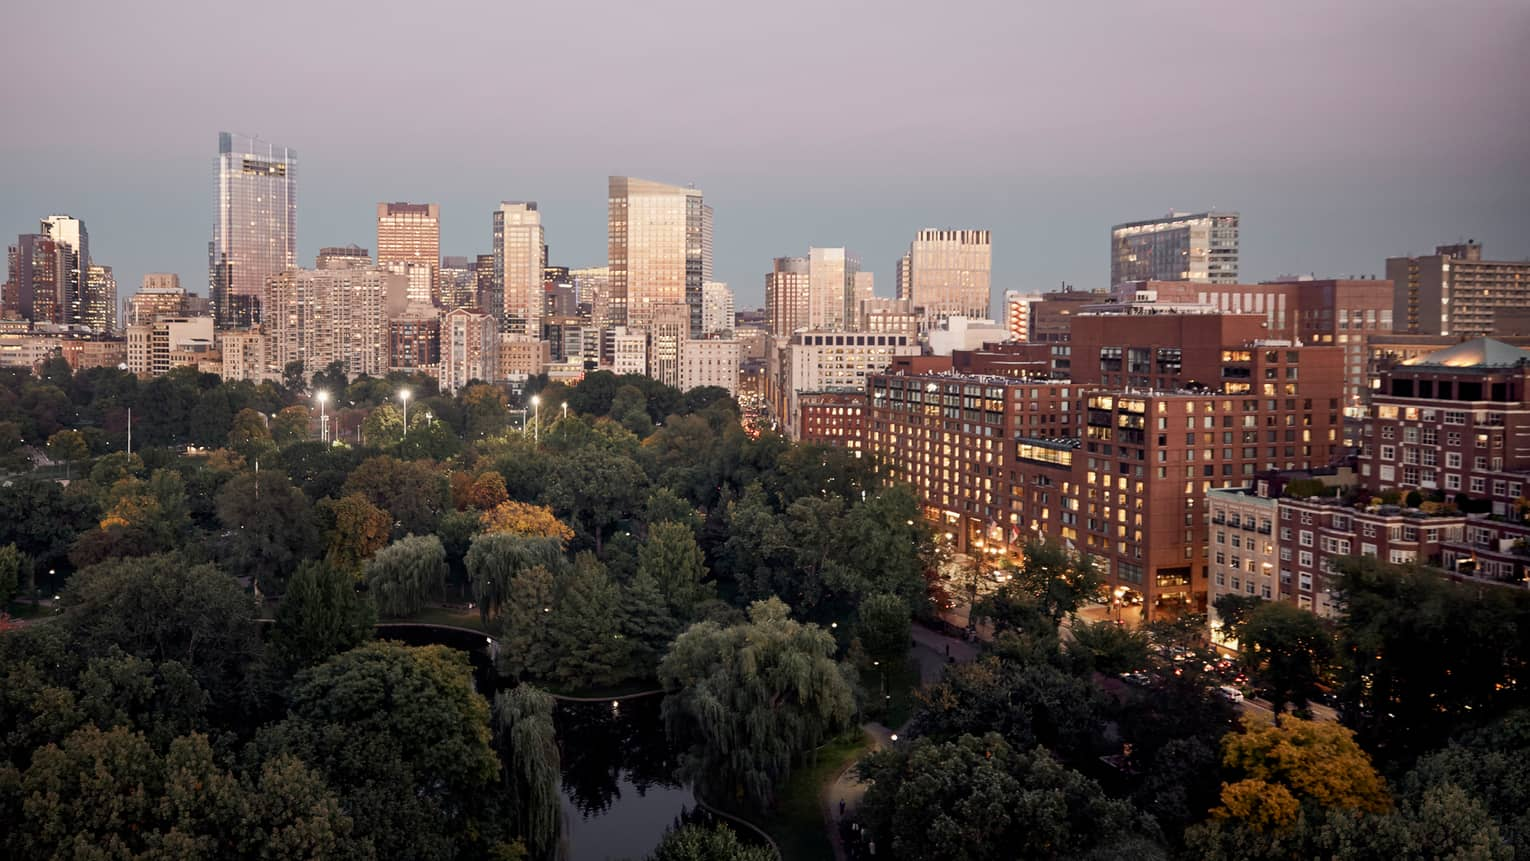 Aerial view of Boston Public Garden canopy of green trees and pond, buildings with lit windows and Boston city skyline at dusk